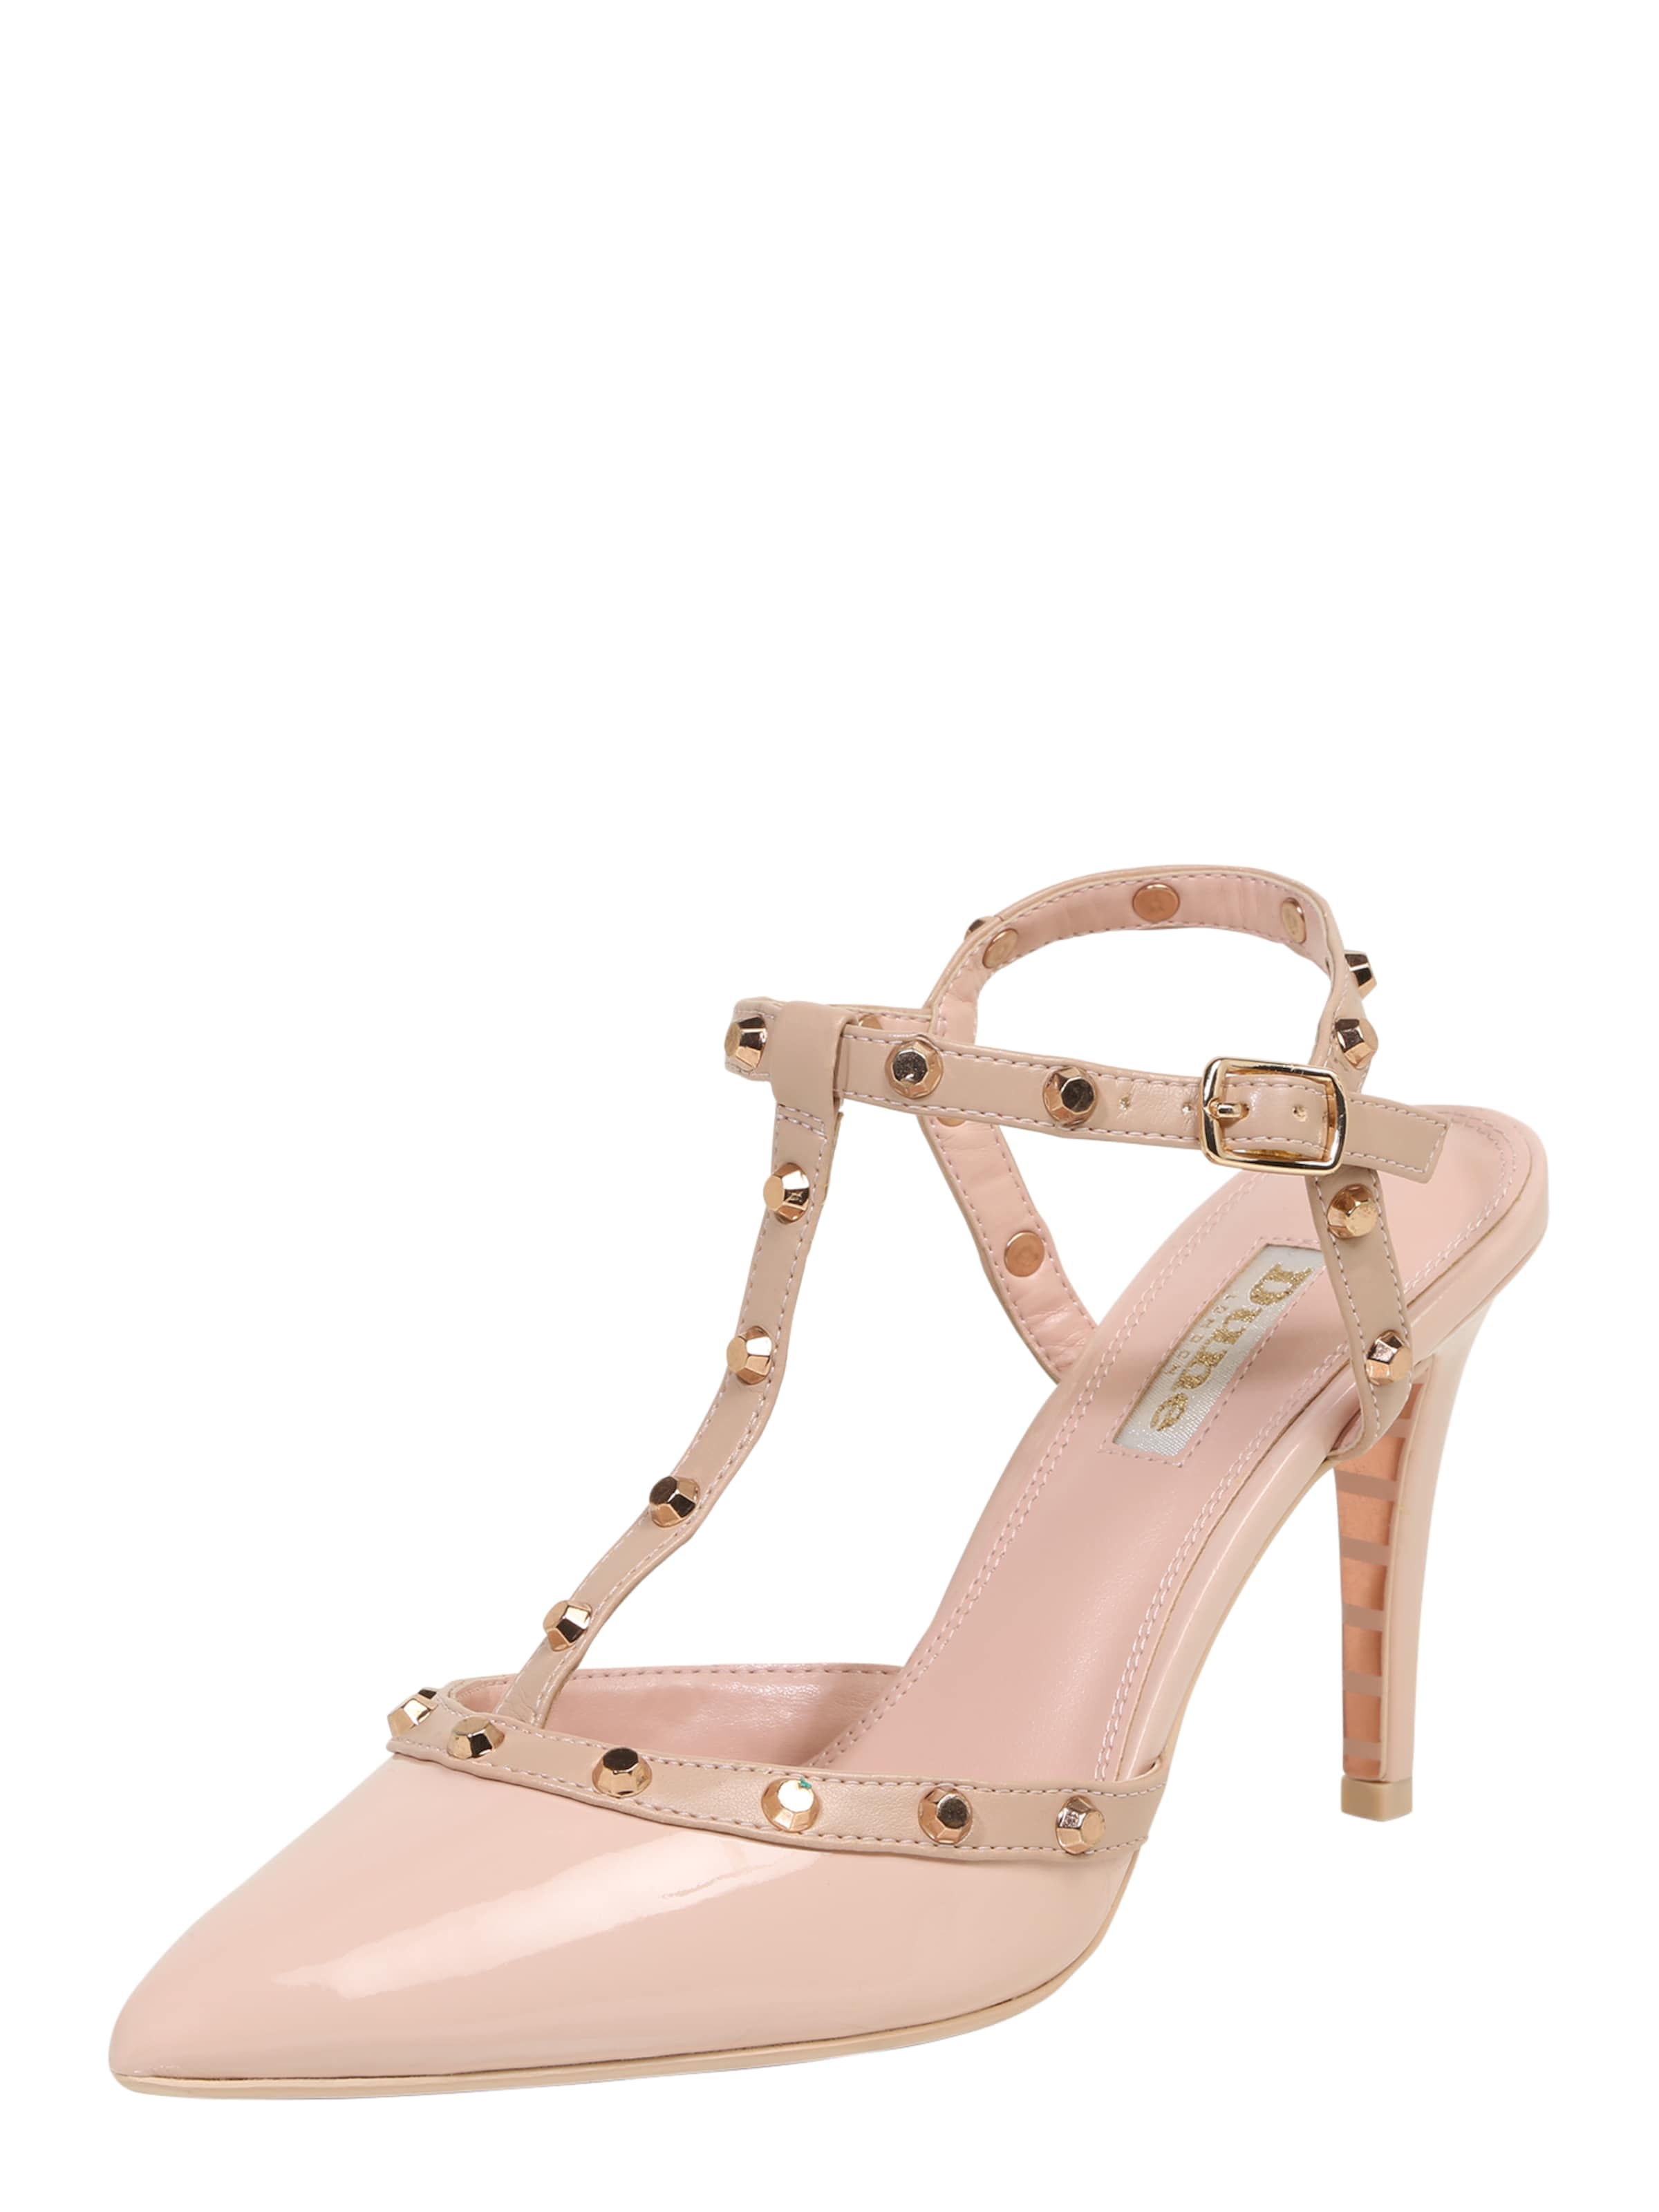 Dune LONDON | Slingpumps  CATELYN CATELYN CATELYN a17786